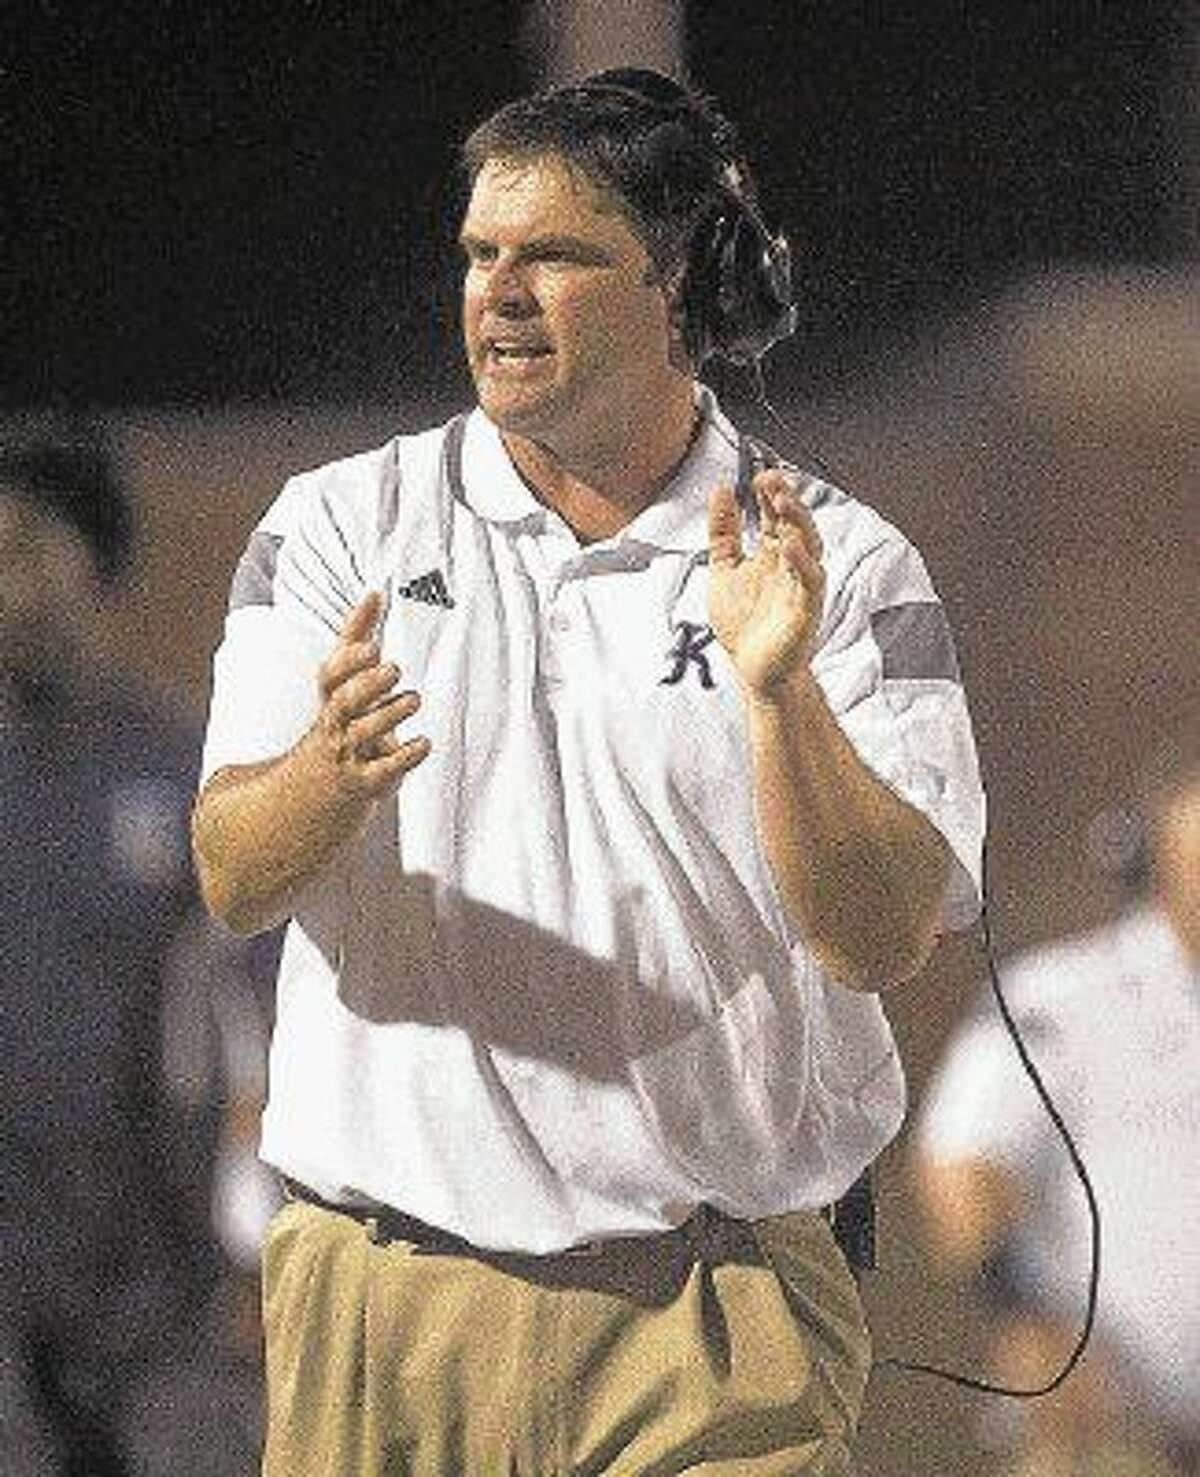 Kingwood head coach Barry Campbell has high hopes for his Kingwood Mustangs this season.